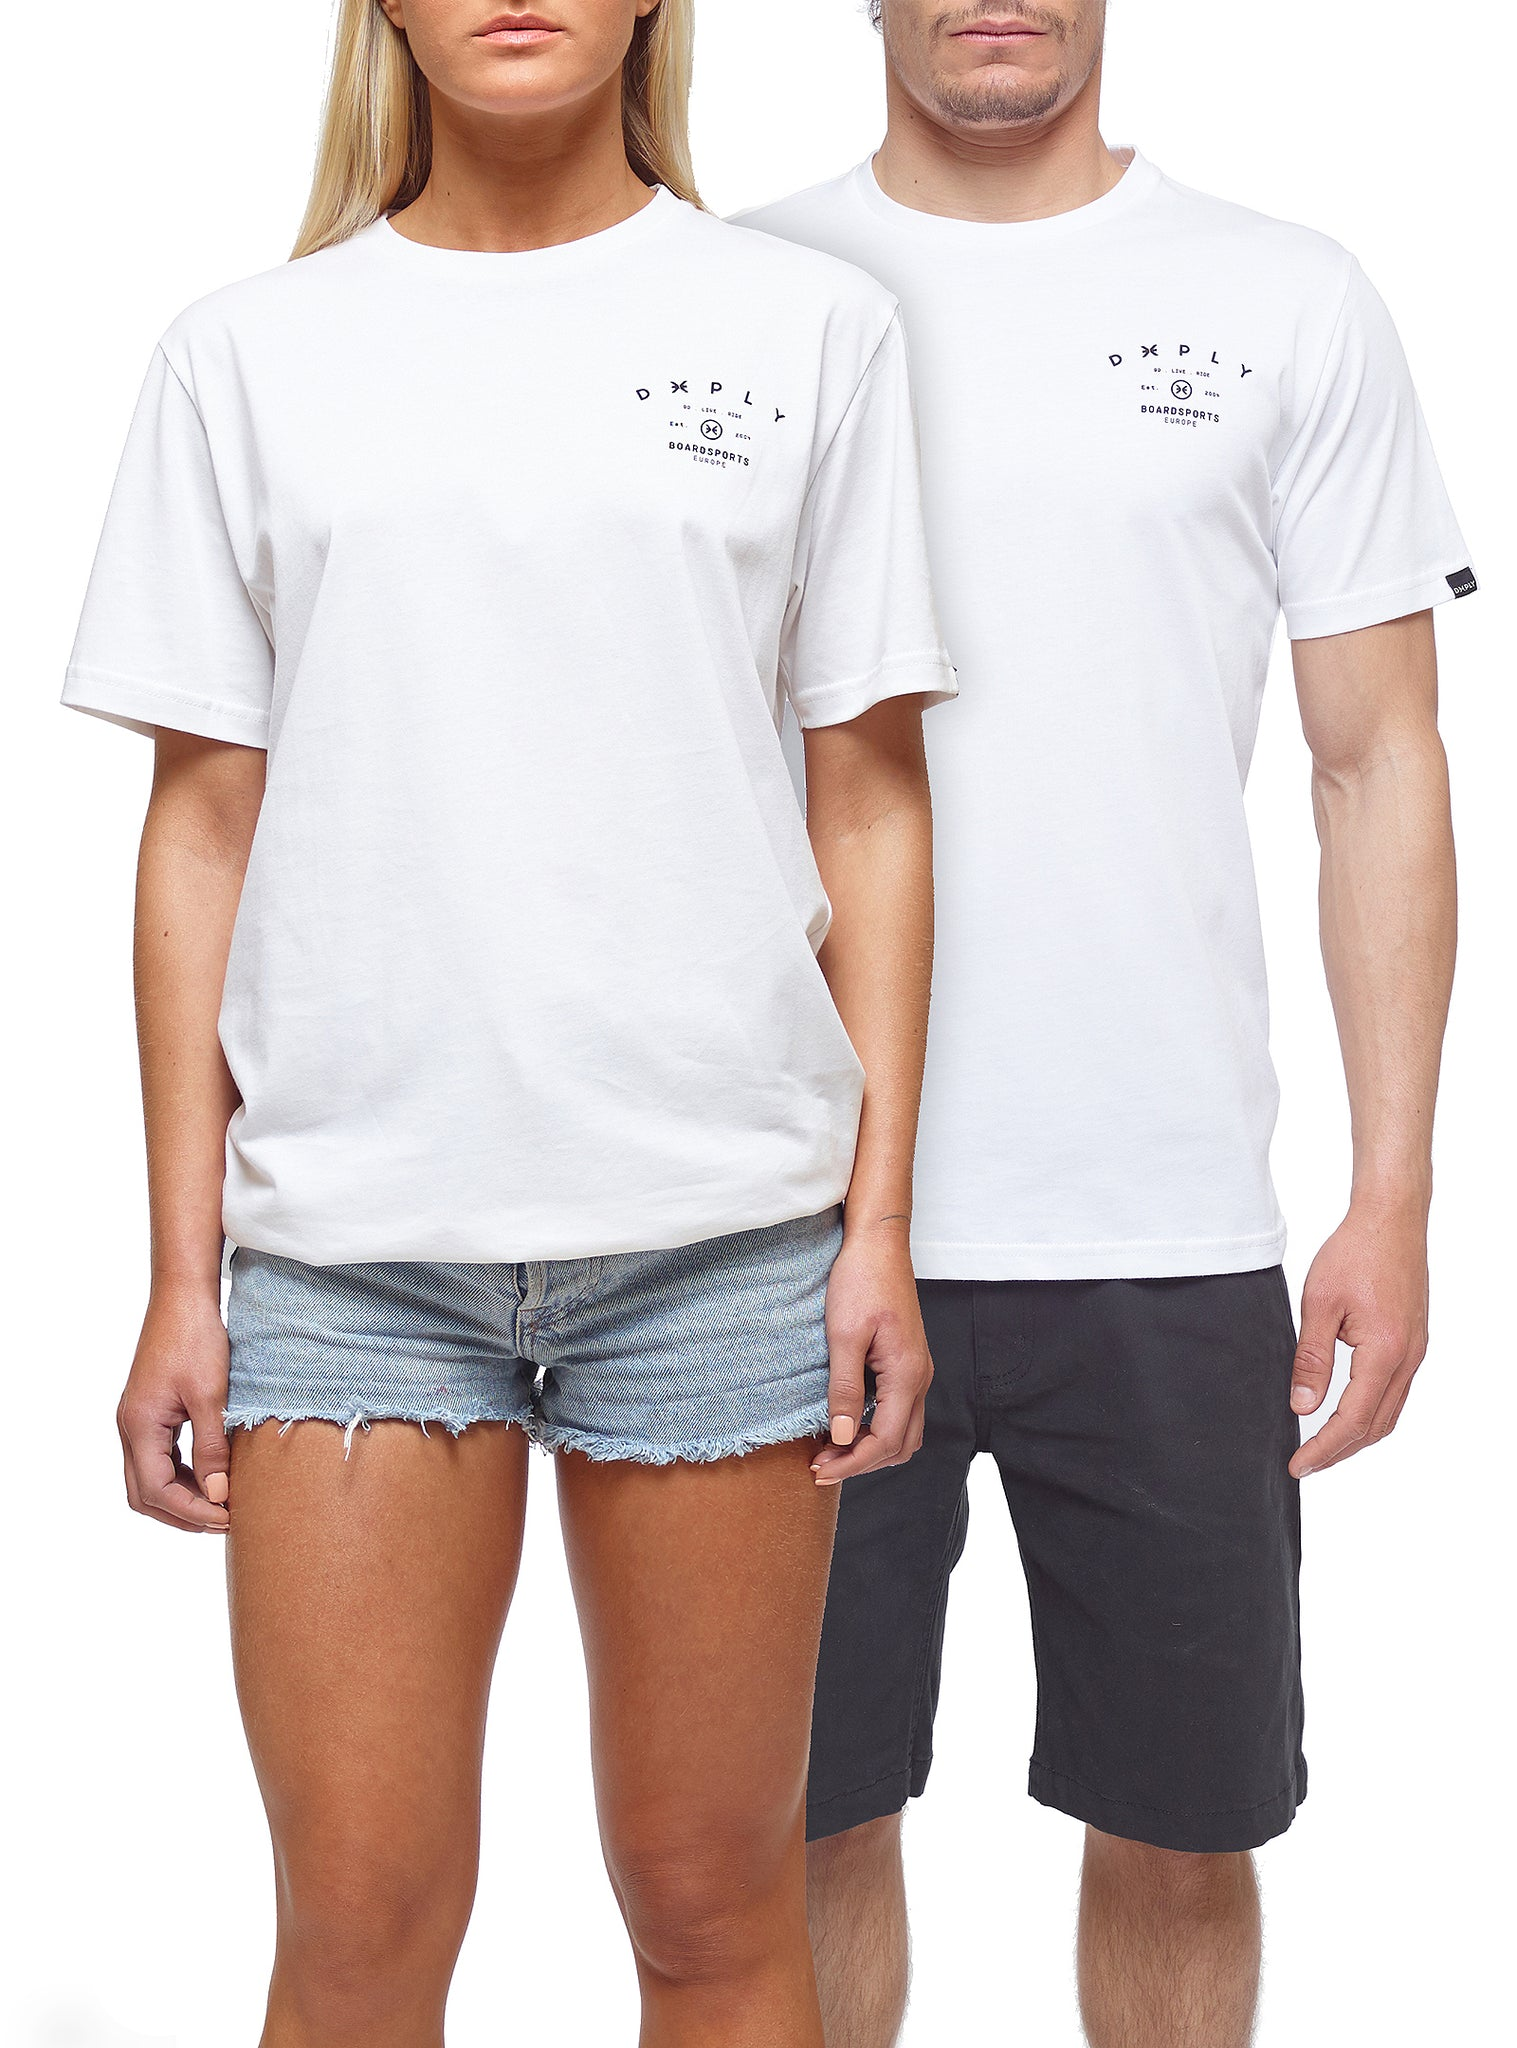 Deeply Europe T-shirt Manches Courtes Blanc